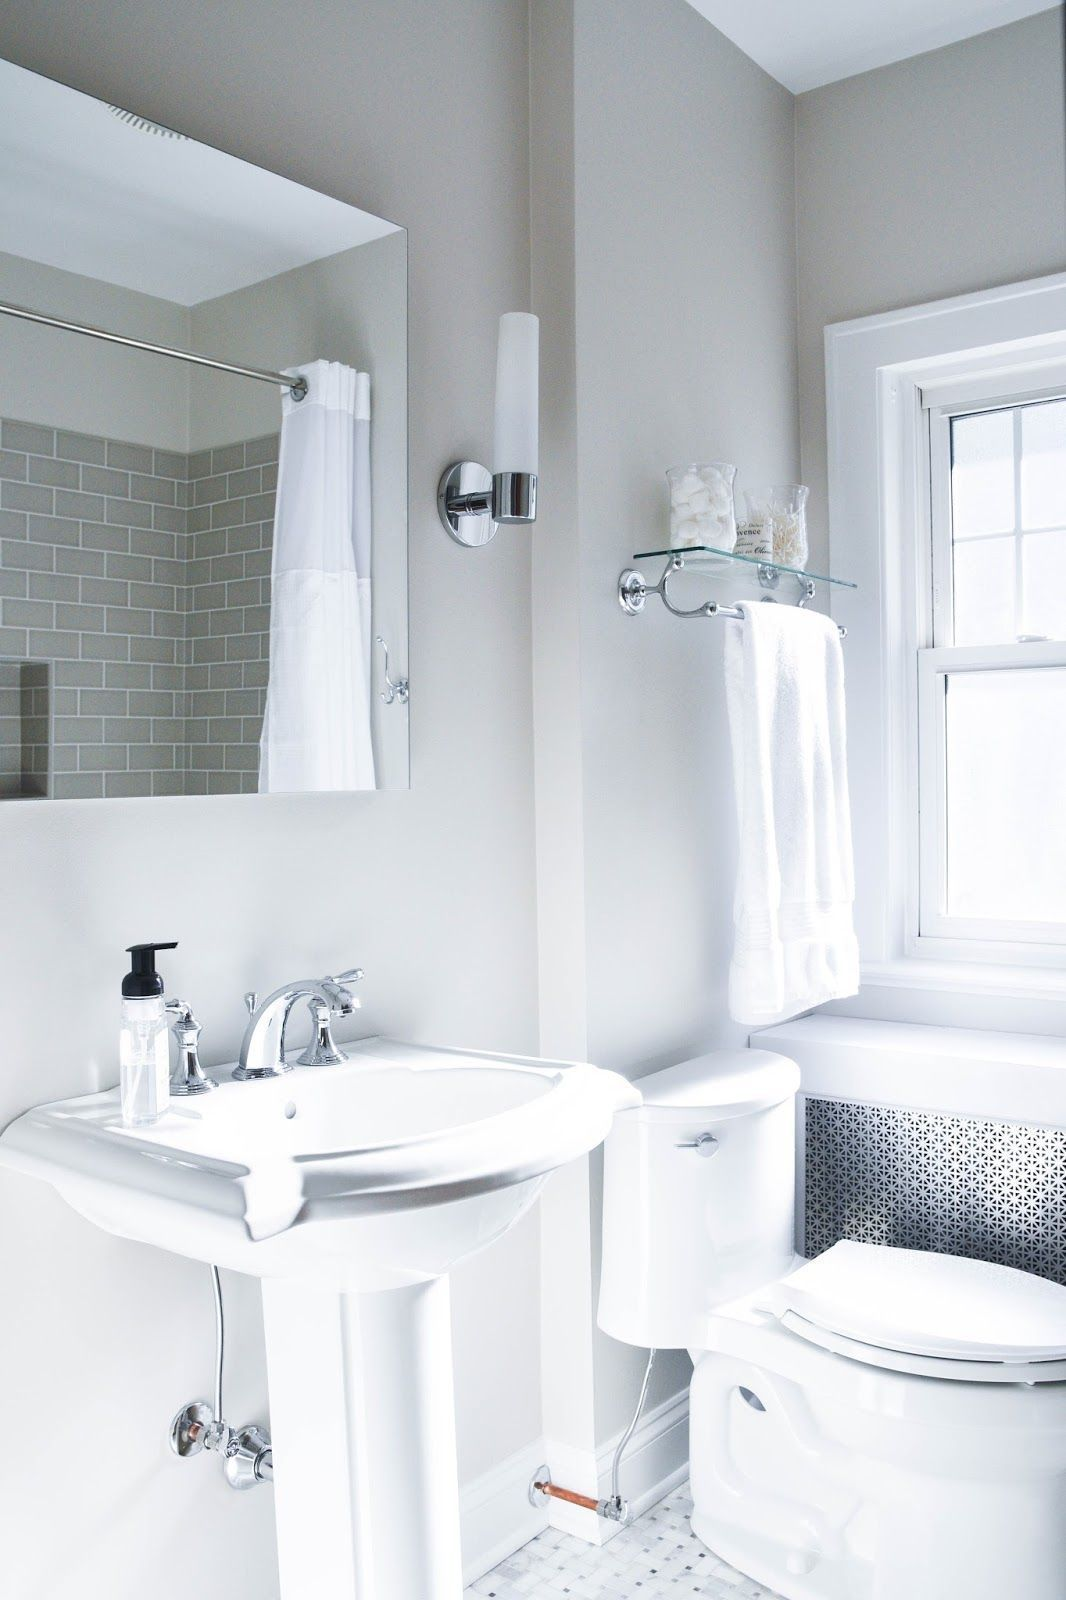 bathroom remodel on a budget how to update a bathroom on on bathroom renovation ideas on a budget id=90724